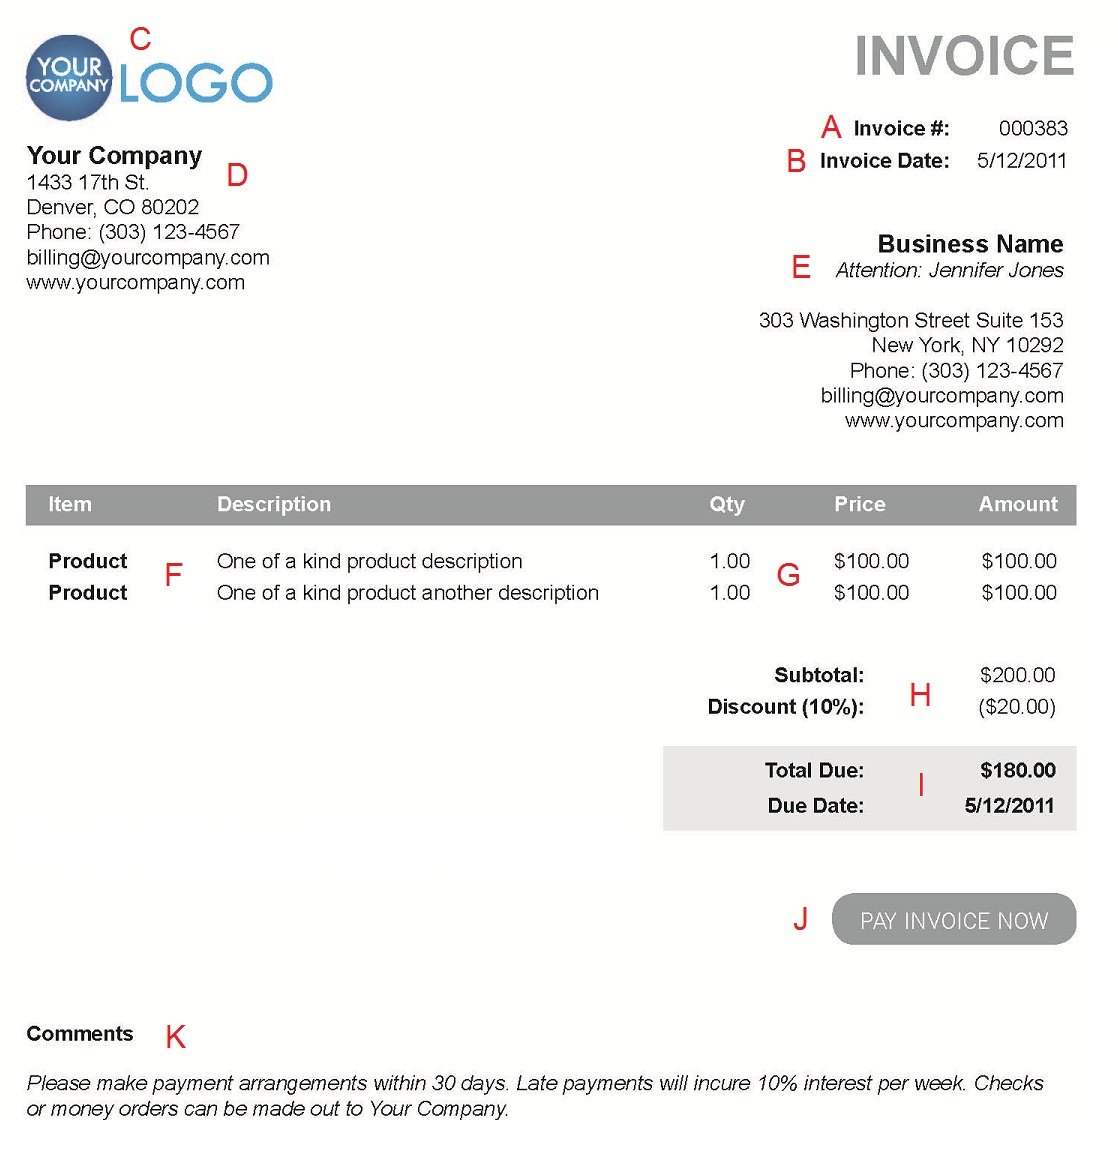 Breakupus  Stunning The  Different Sections Of An Electronic Payment Invoice With Handsome A  With Easy On The Eye Msrp And Invoice Price Also Invoice Processing Flowchart In Addition Bill Invoice Format In Word And Process Invoice As Well As Australian Invoice Additionally Invoice Template Pdf Download From Paysimplecom With Breakupus  Handsome The  Different Sections Of An Electronic Payment Invoice With Easy On The Eye A  And Stunning Msrp And Invoice Price Also Invoice Processing Flowchart In Addition Bill Invoice Format In Word From Paysimplecom